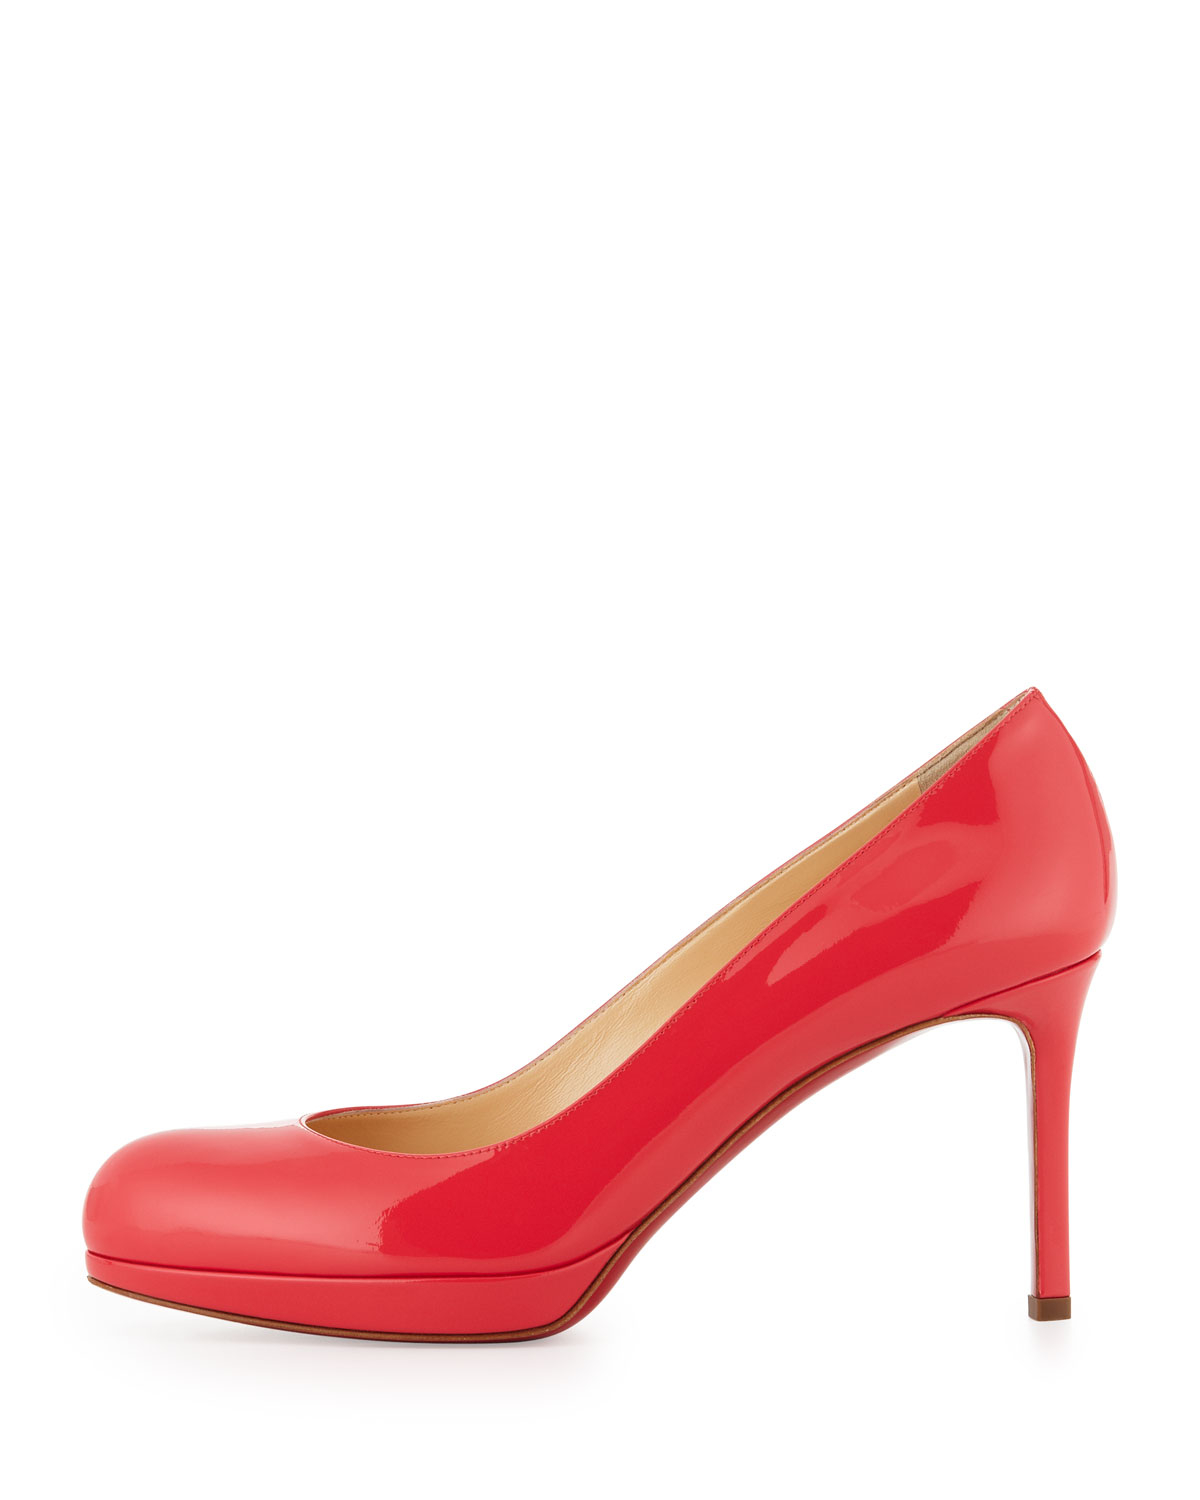 christian louboutin mens spiked sneakers - christian louboutin round-toe wedges Red patent leather covered ...